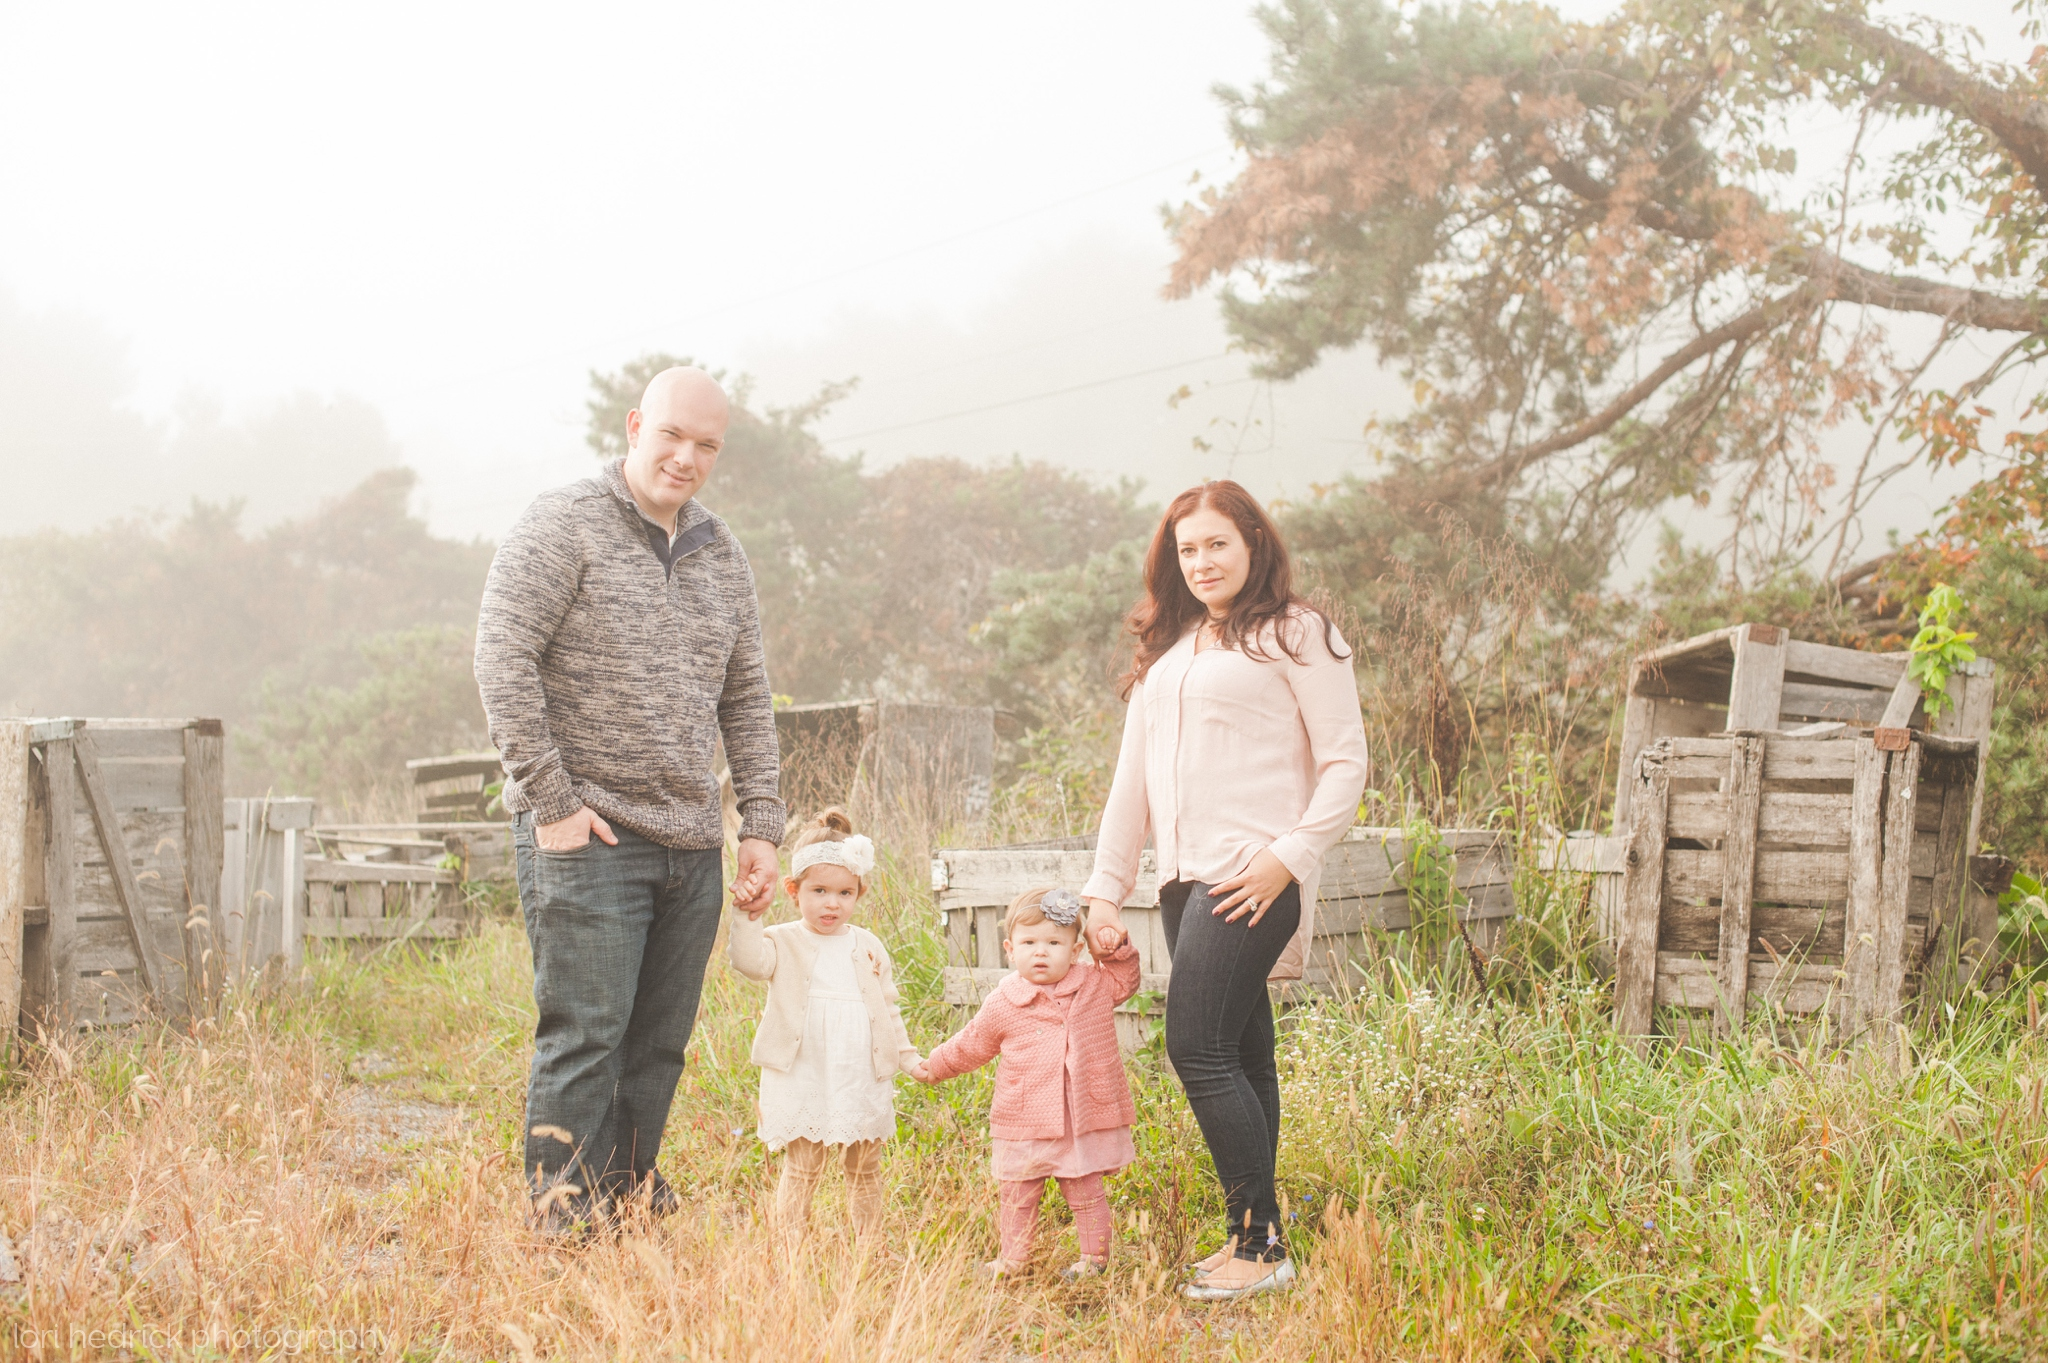 AppleOrchardFamilySession102